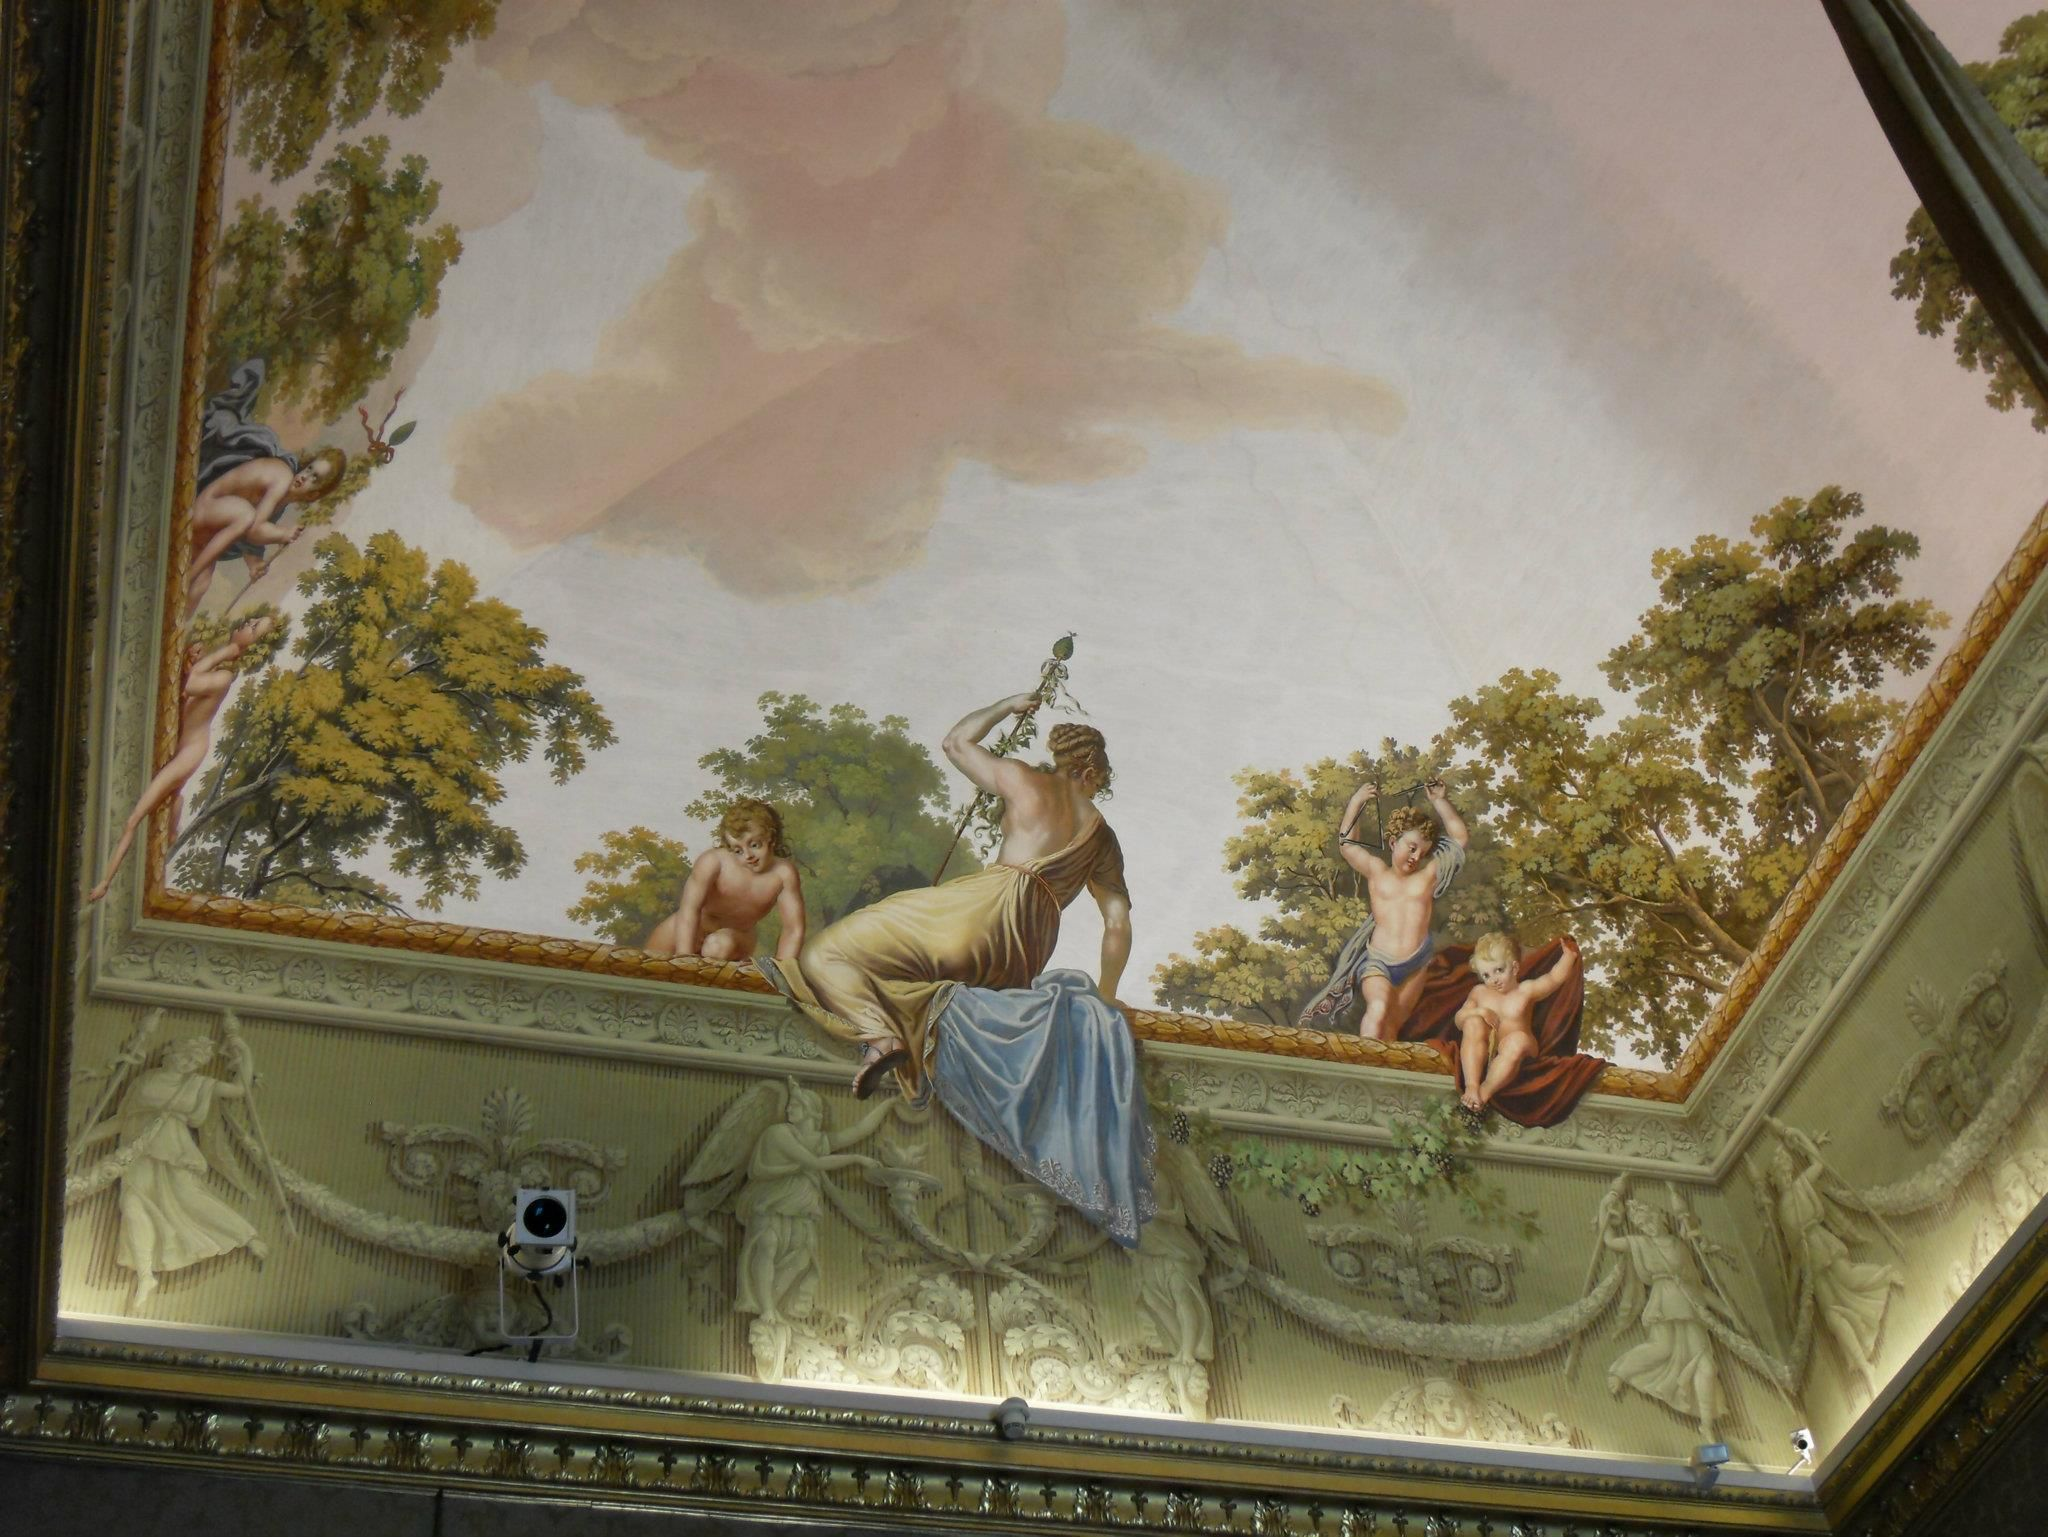 ceilings with mural art - photo #9